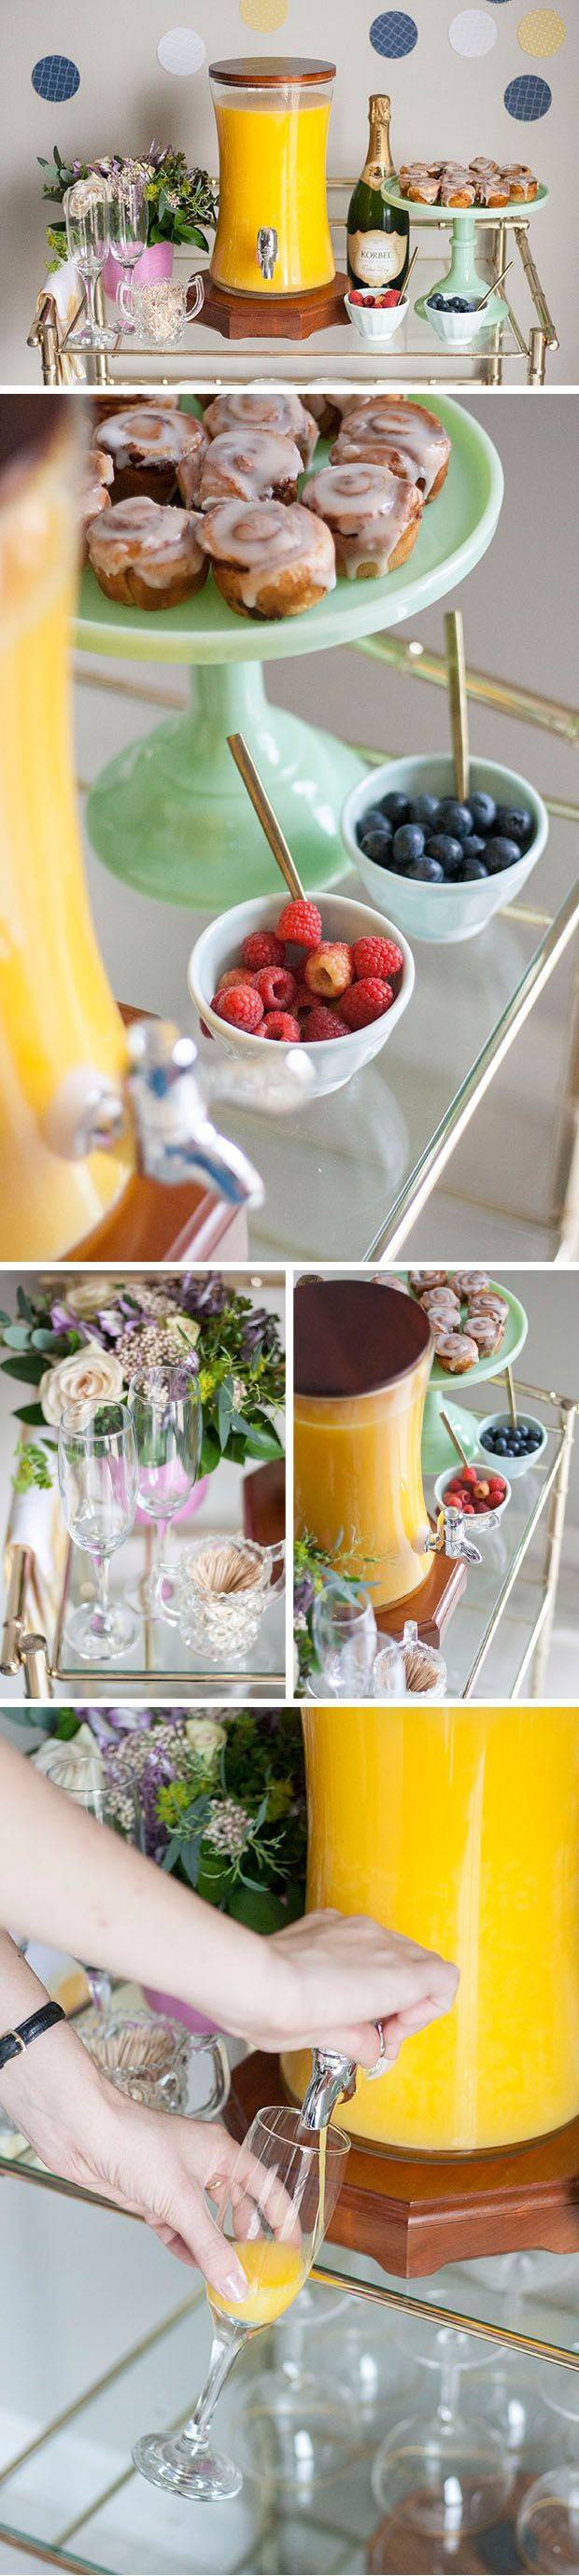 Build Your Own Mimosa Bar for the Ultimate Boozy Brunch